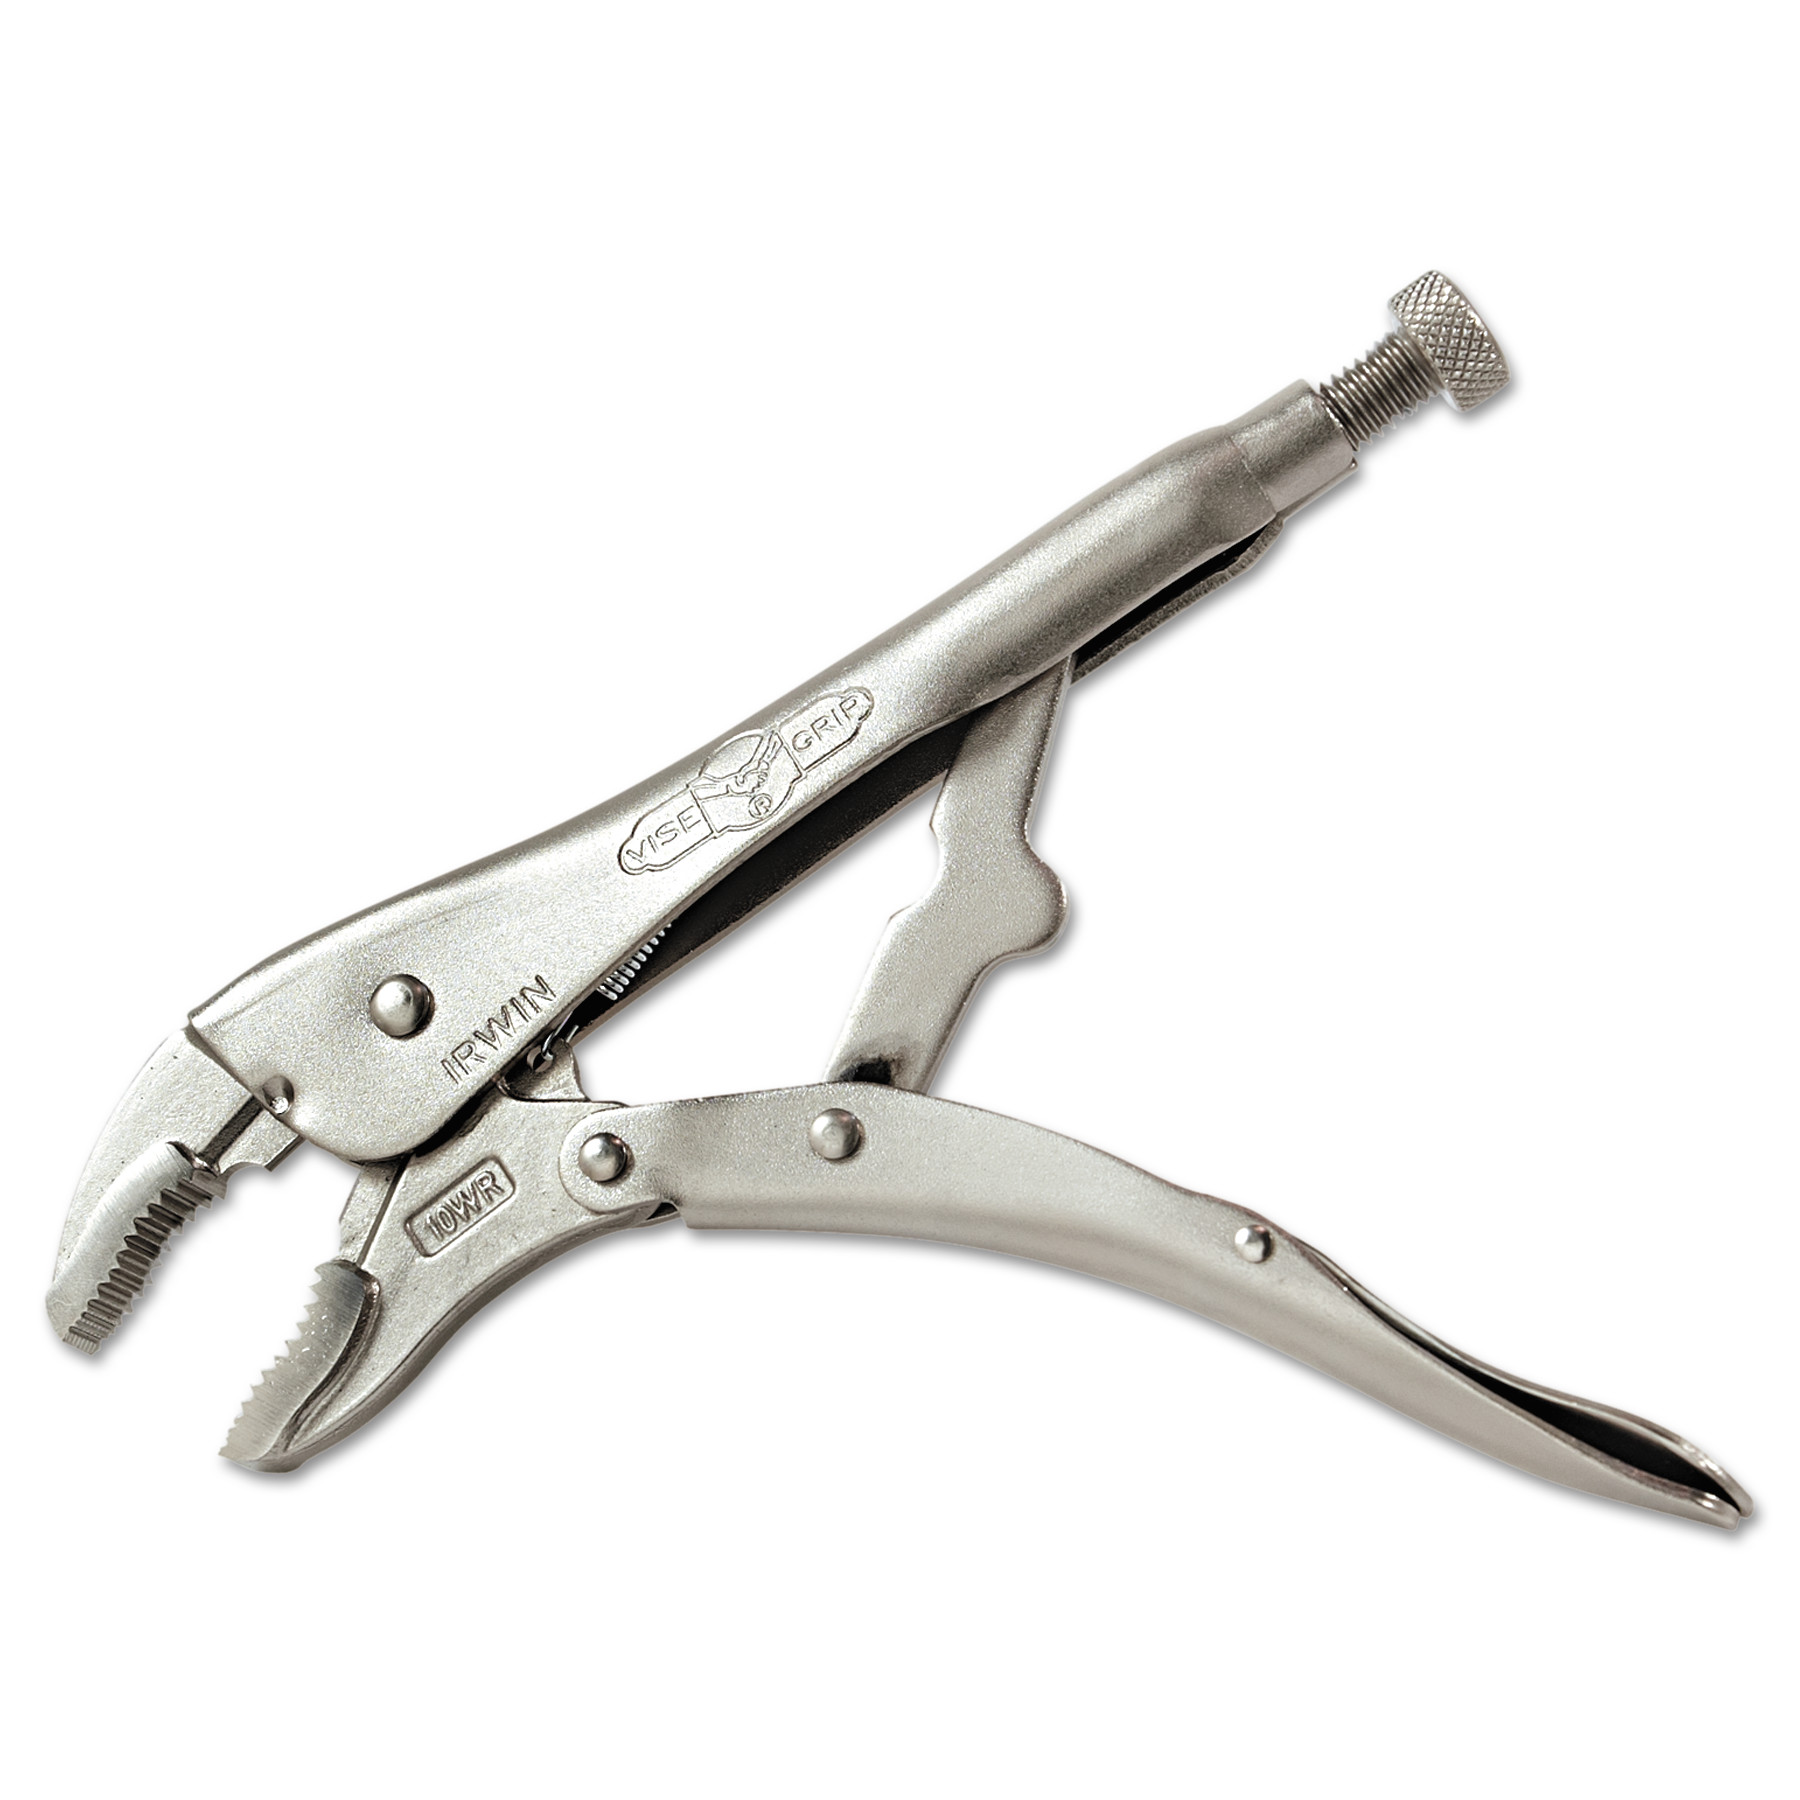 "IRWIN Original Curved-Jaw Cutter Locking Pliers, 10"" Tool Length, 1 7 8"" Jaw... by Irwin Tools"